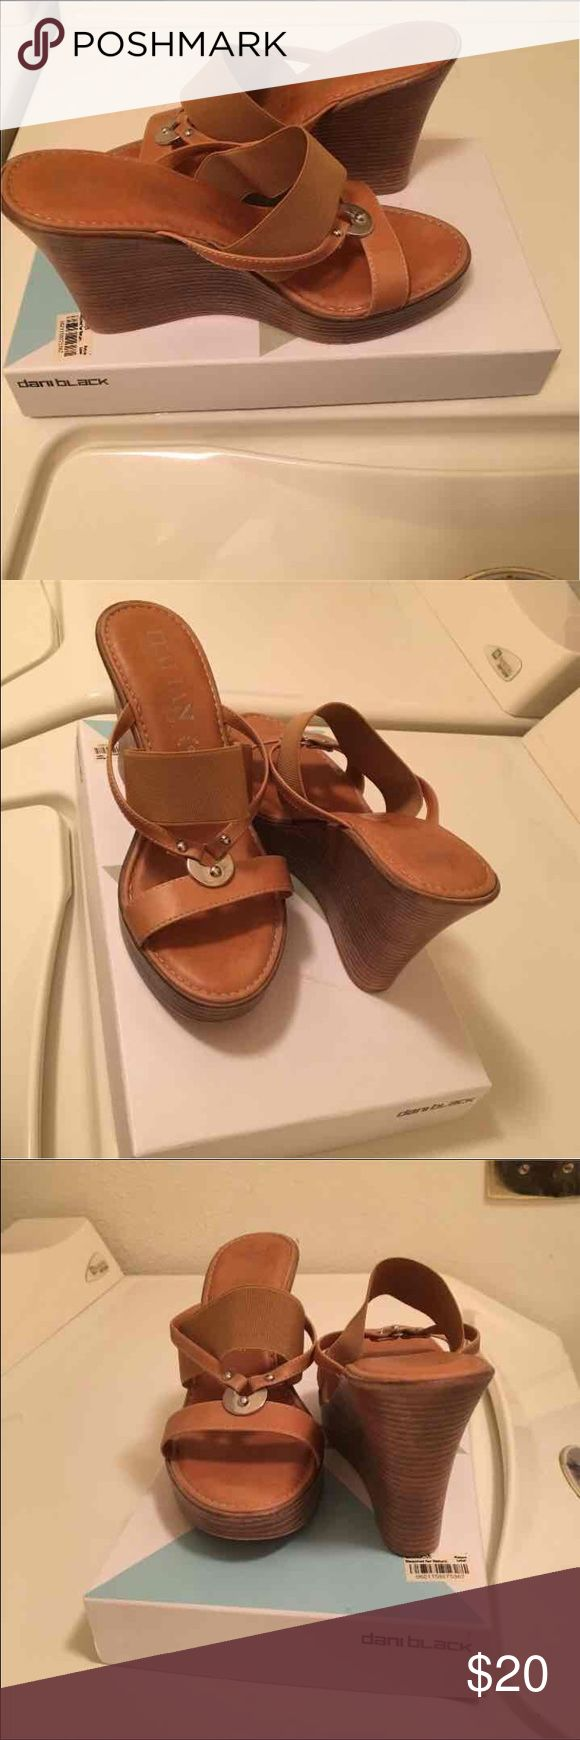 Brown sandals In very good condition Italian shoe makers Shoes